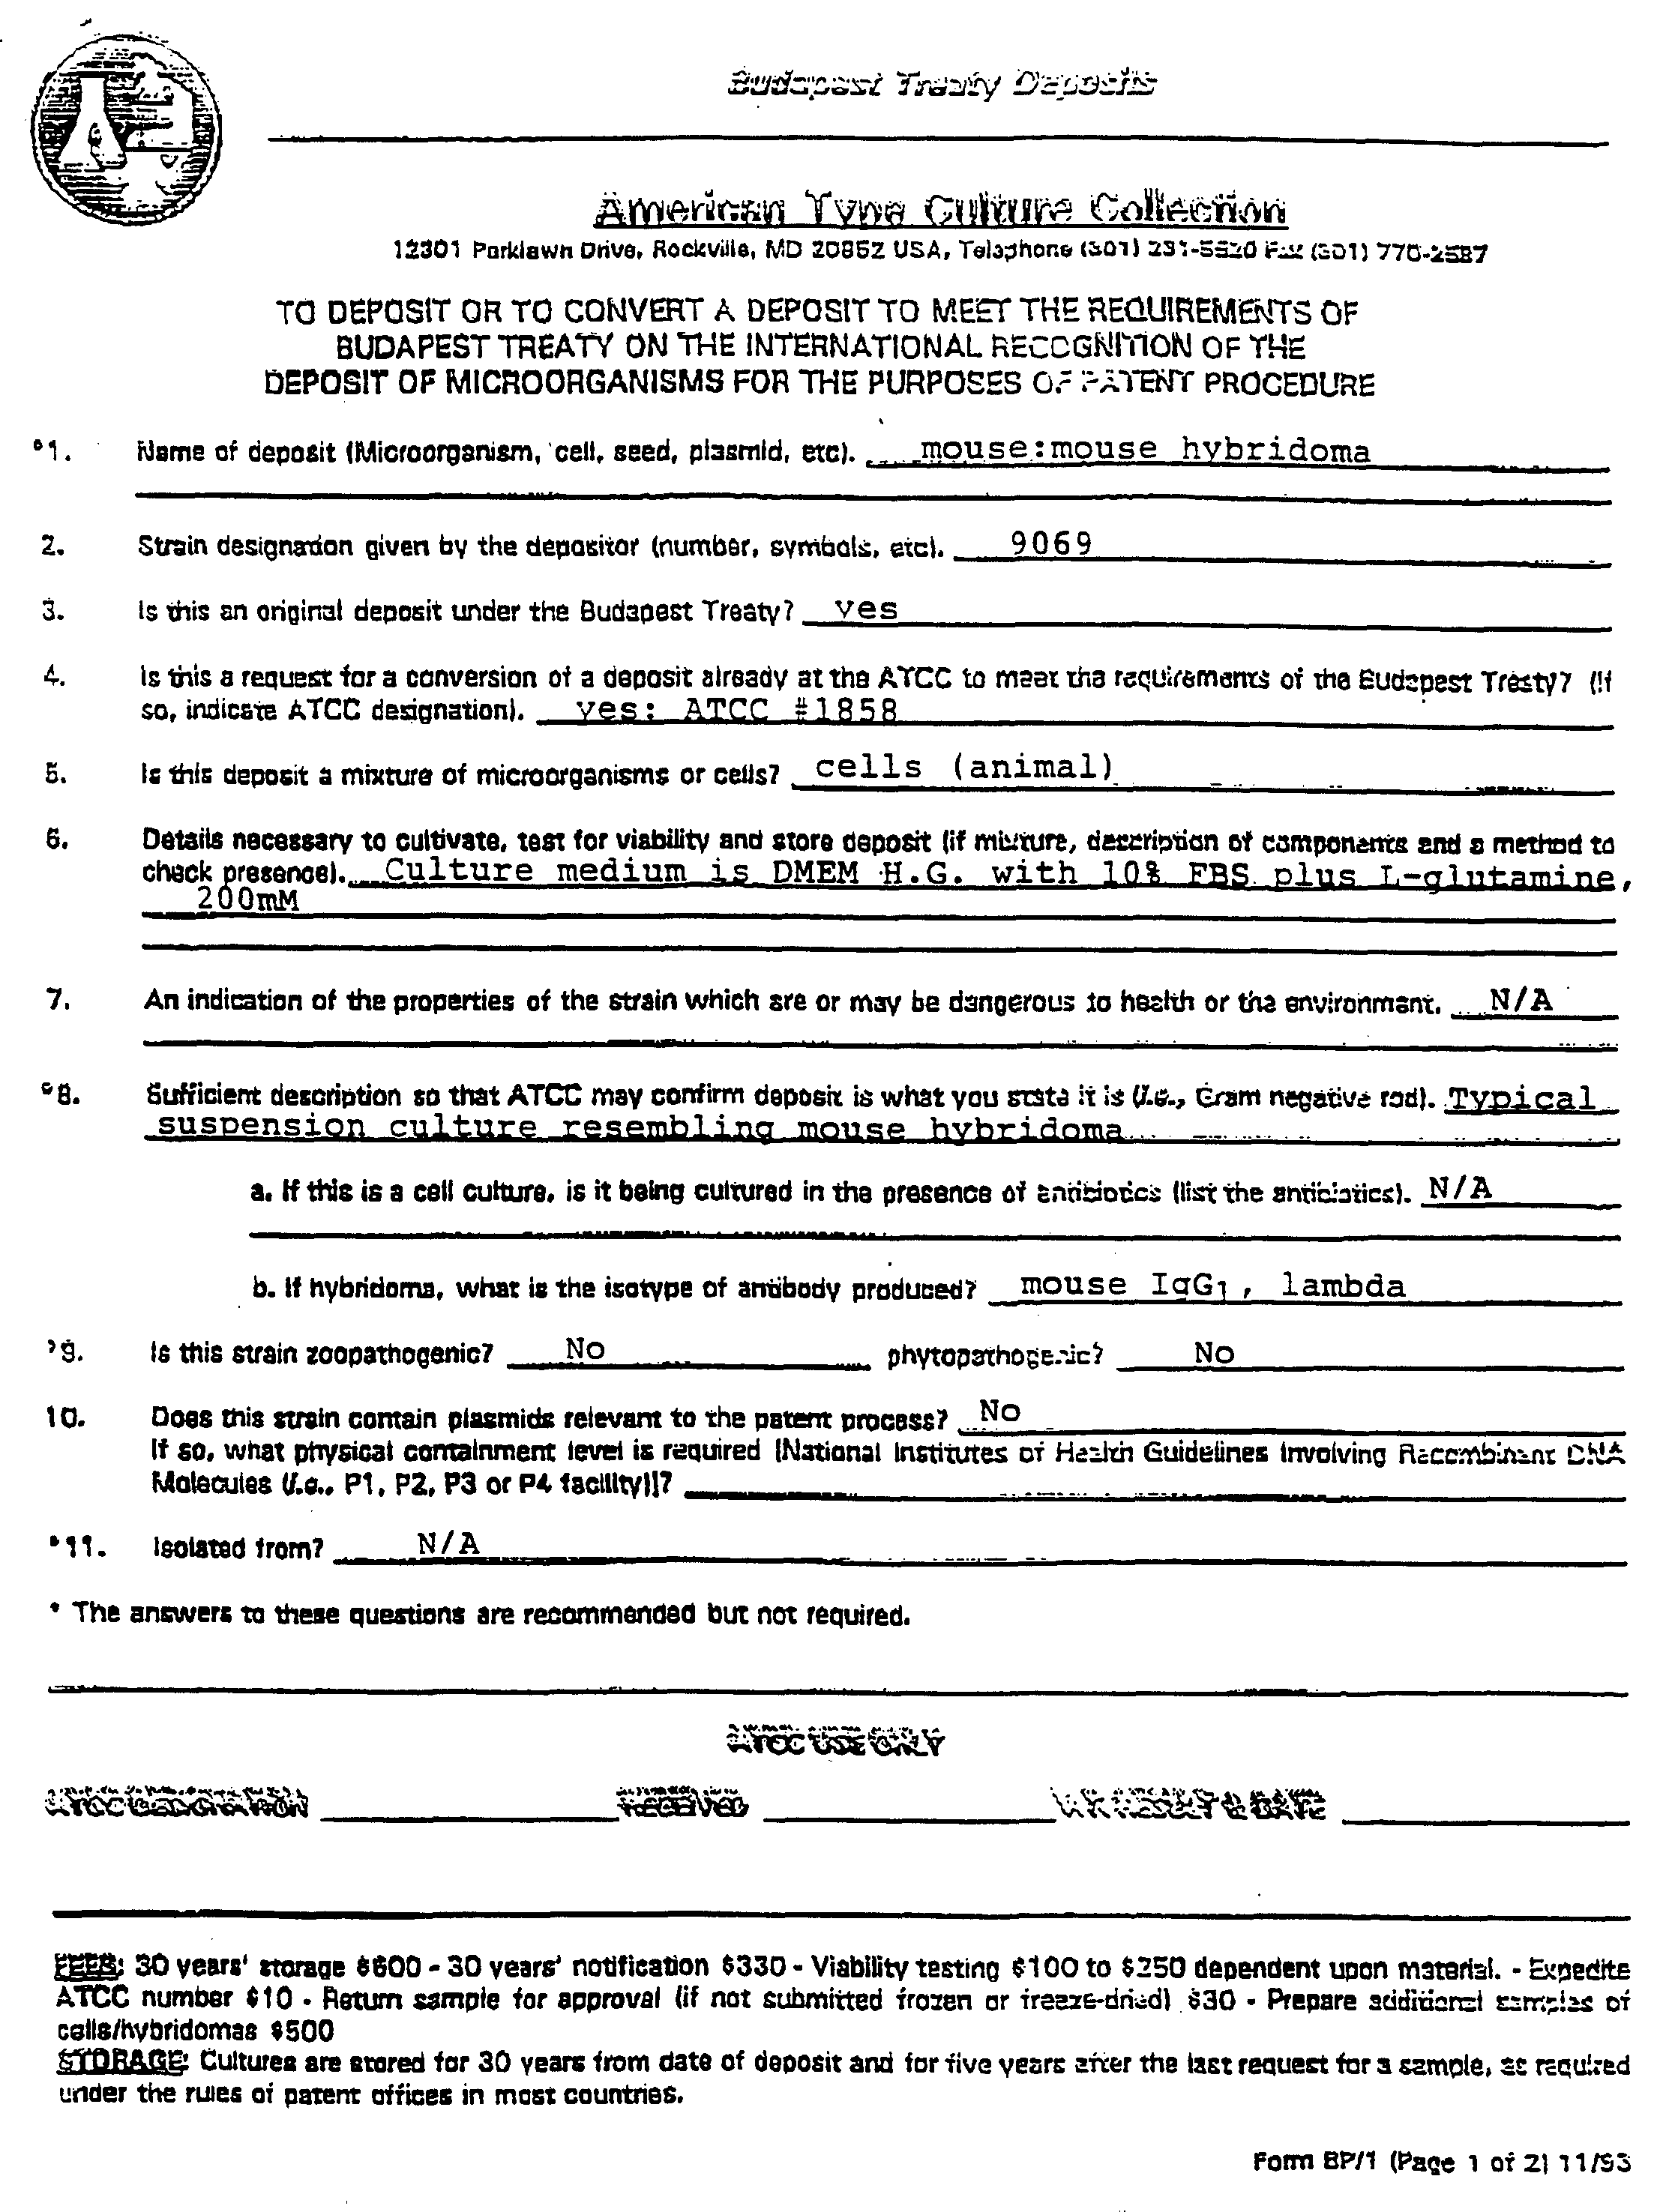 WO1995034817A1 - Positive and positive/negative cell